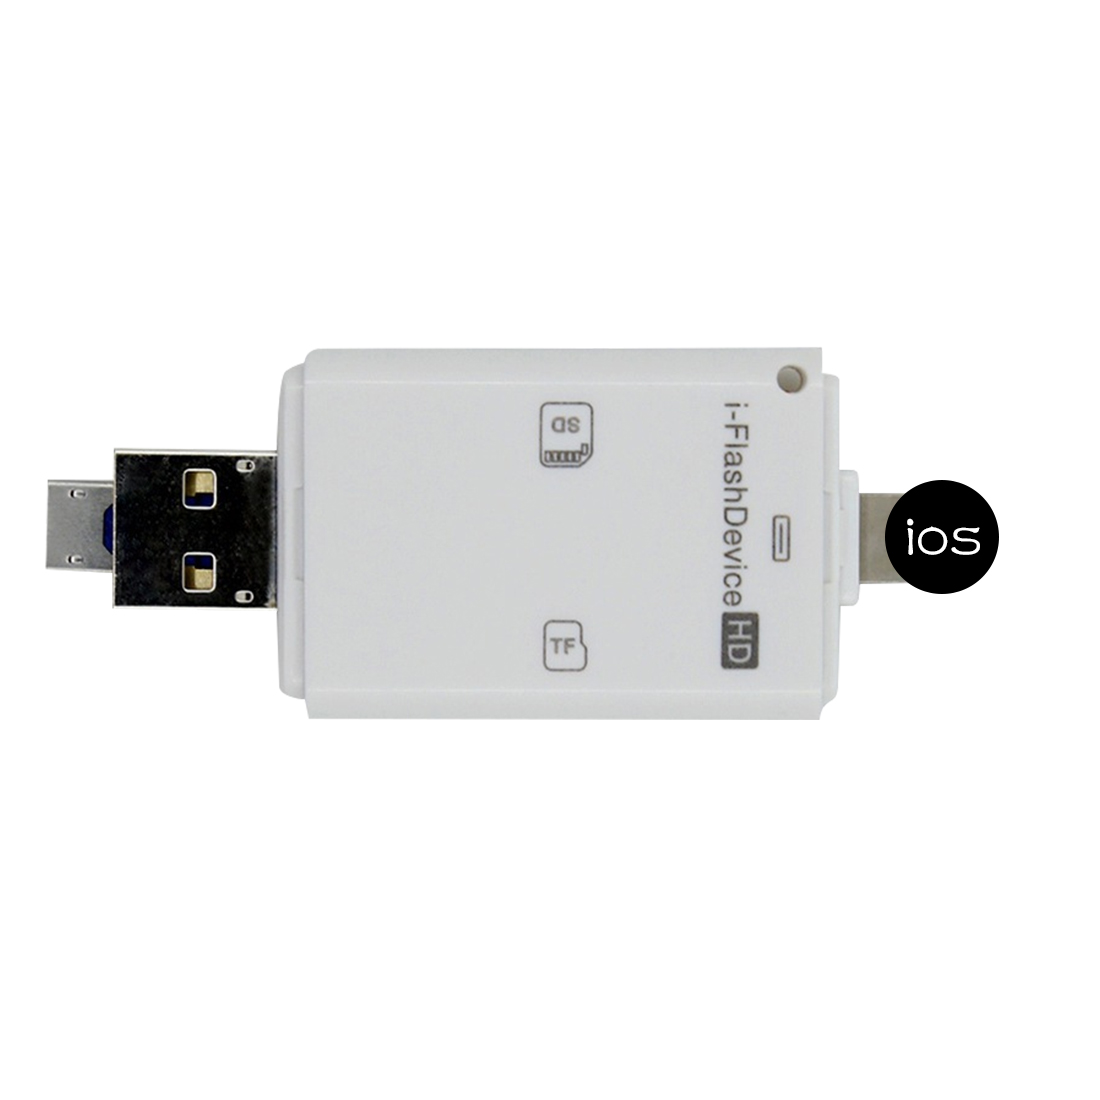 Etmakit 3in1 Micro USB Reader Micro SD SDHC TF Sd-kaart Voor iPhone 5/5 s/6/ 6 7 plus/ipad pro air/Samsung/LG/HTC Andrid OTG Telefoons